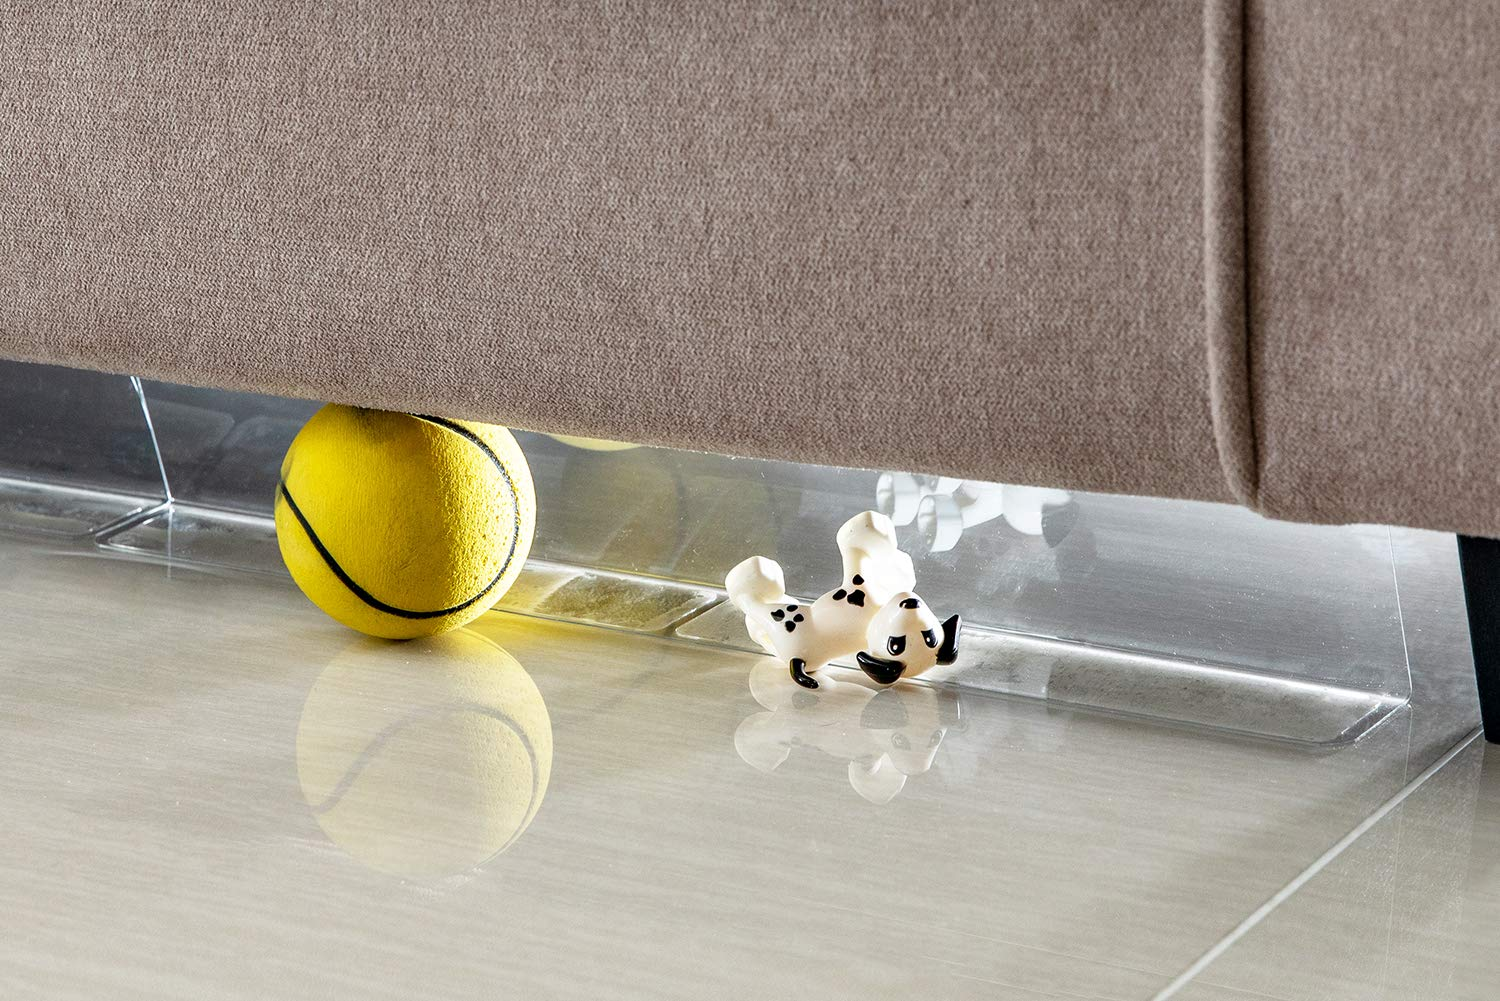 BOWERBIRD Clear Toy Blockers for Furniture - Stop Things from Going Under Couch Sofa Bed and Other Furniture - Suit for Hard Surface Floors Only (1.6 inch high)